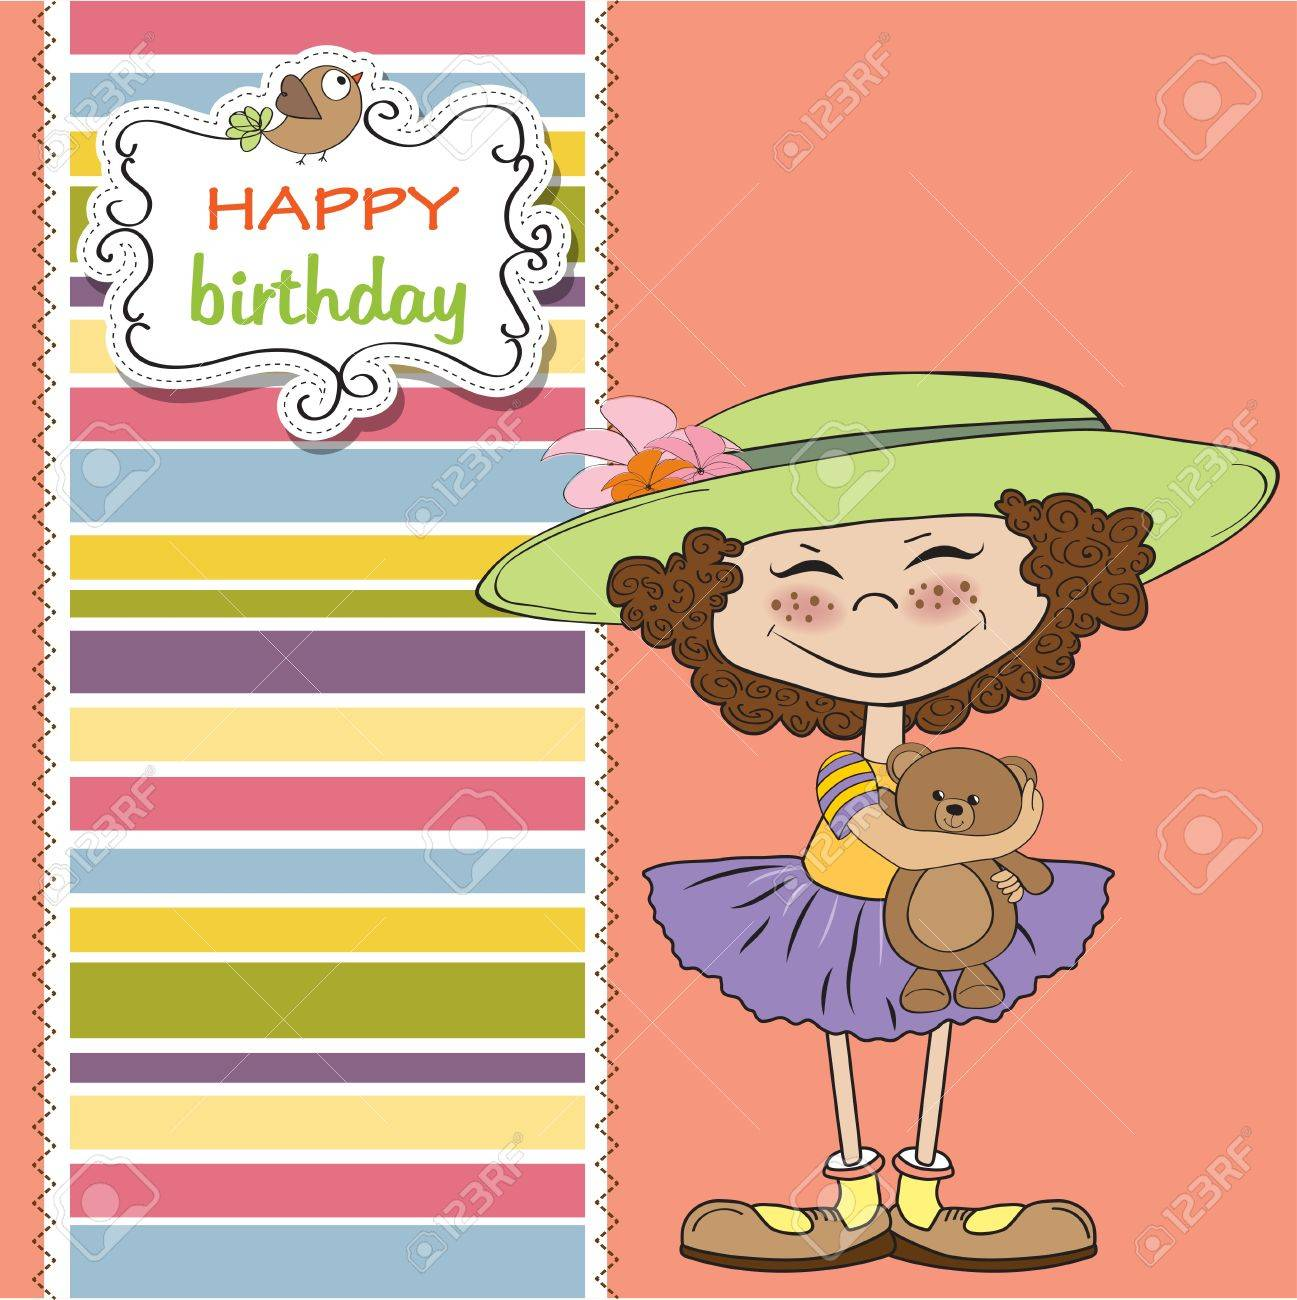 Cute Birthday Greeting Card With Girl And Her Teddy Bear Royalty – Cute Birthday Greeting Cards